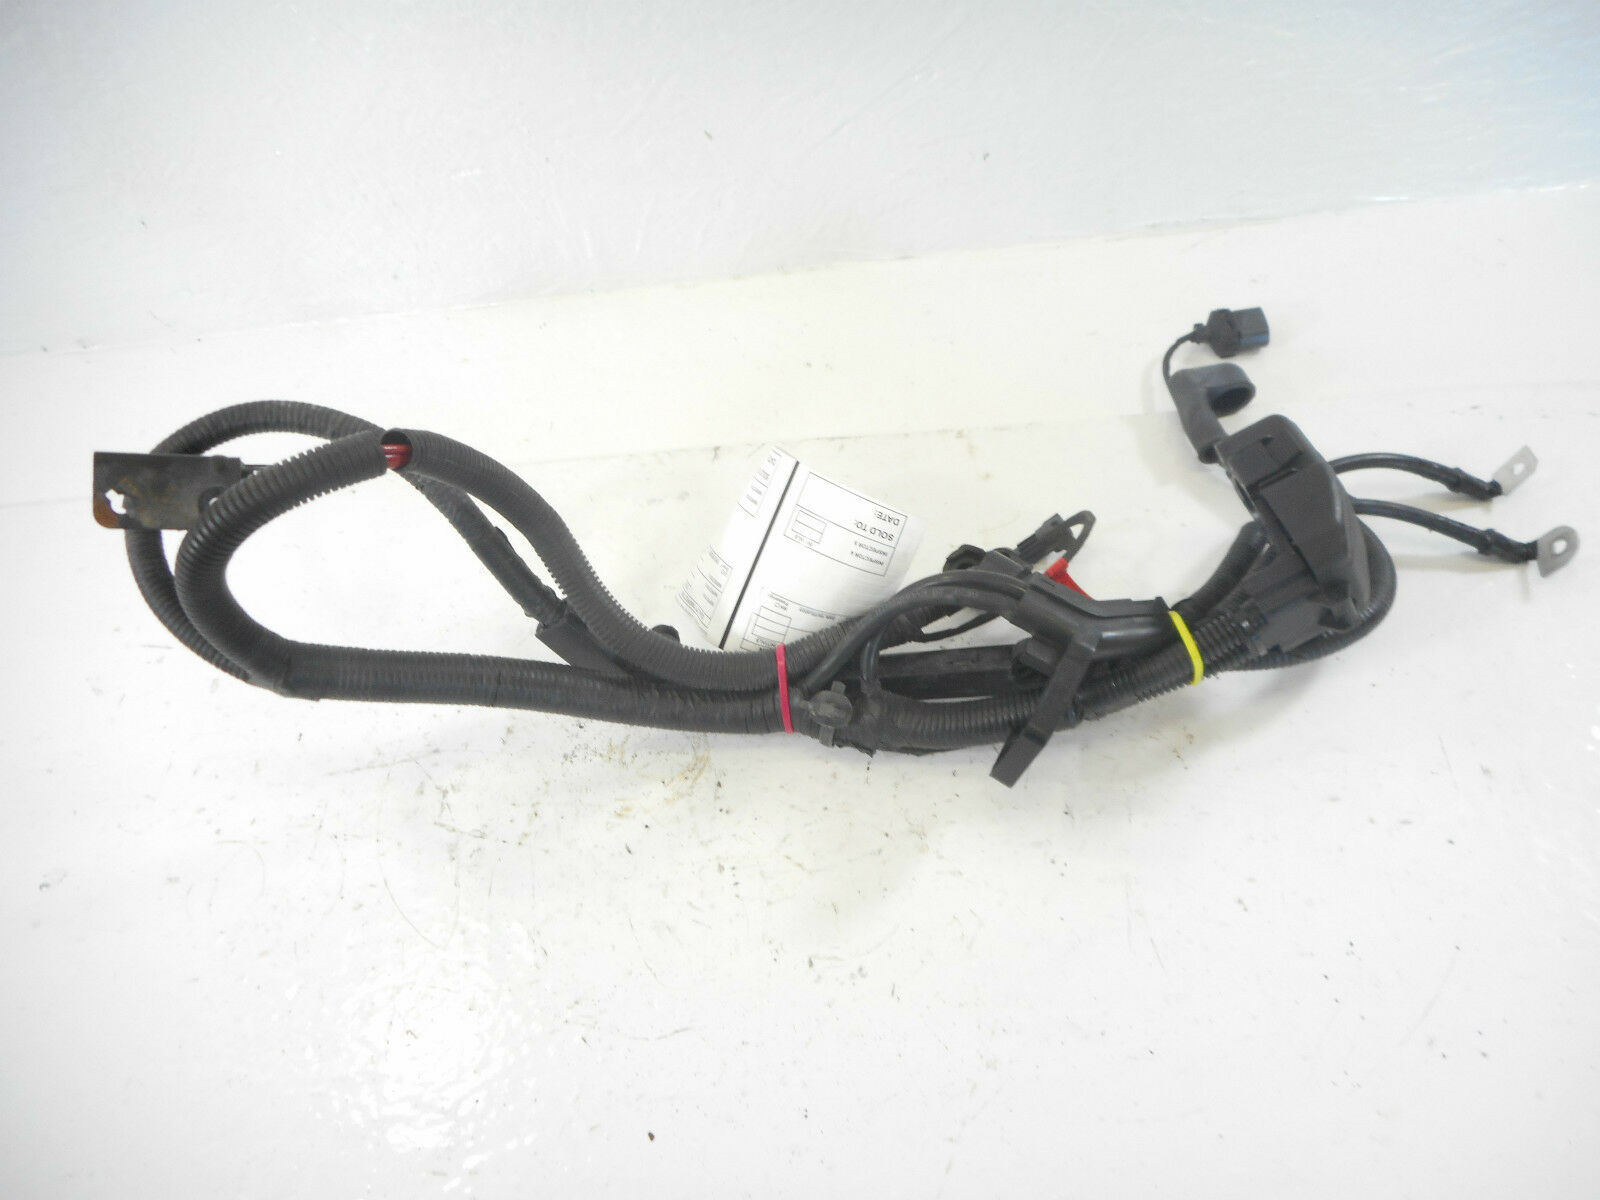 s l1600 2012 hyundai elantra hybrid 2 0l battery positive cable & wiring 2012 hyundai elantra wiring diagram at pacquiaovsvargaslive.co